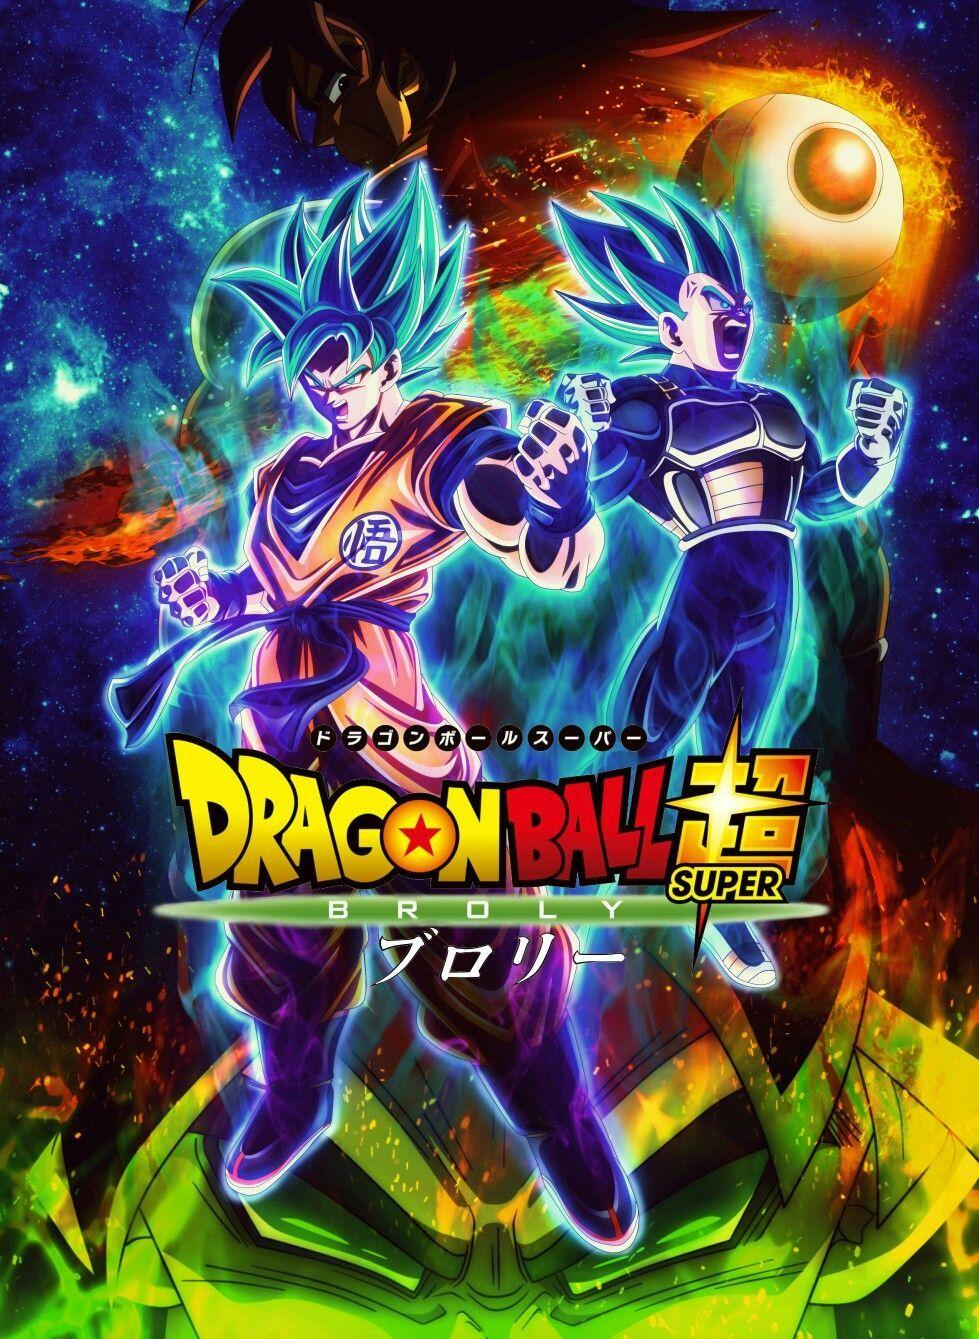 Dragon Ball Super Broly Movie Wallpapers Wallpaper Cave